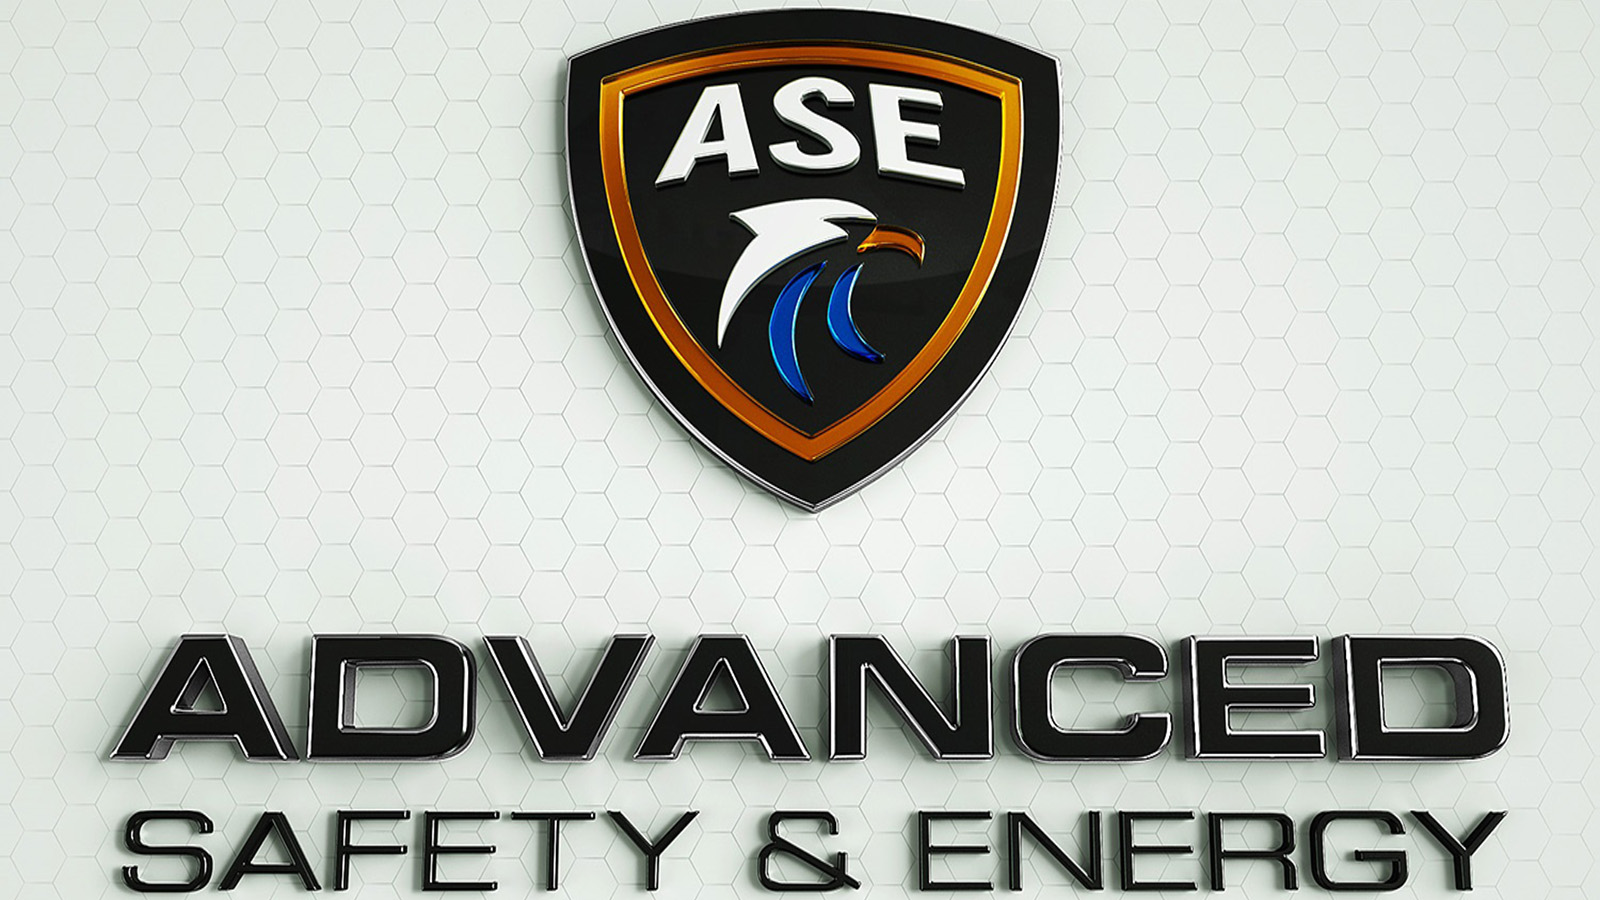 ADVANCED SAFETY & ENERGY